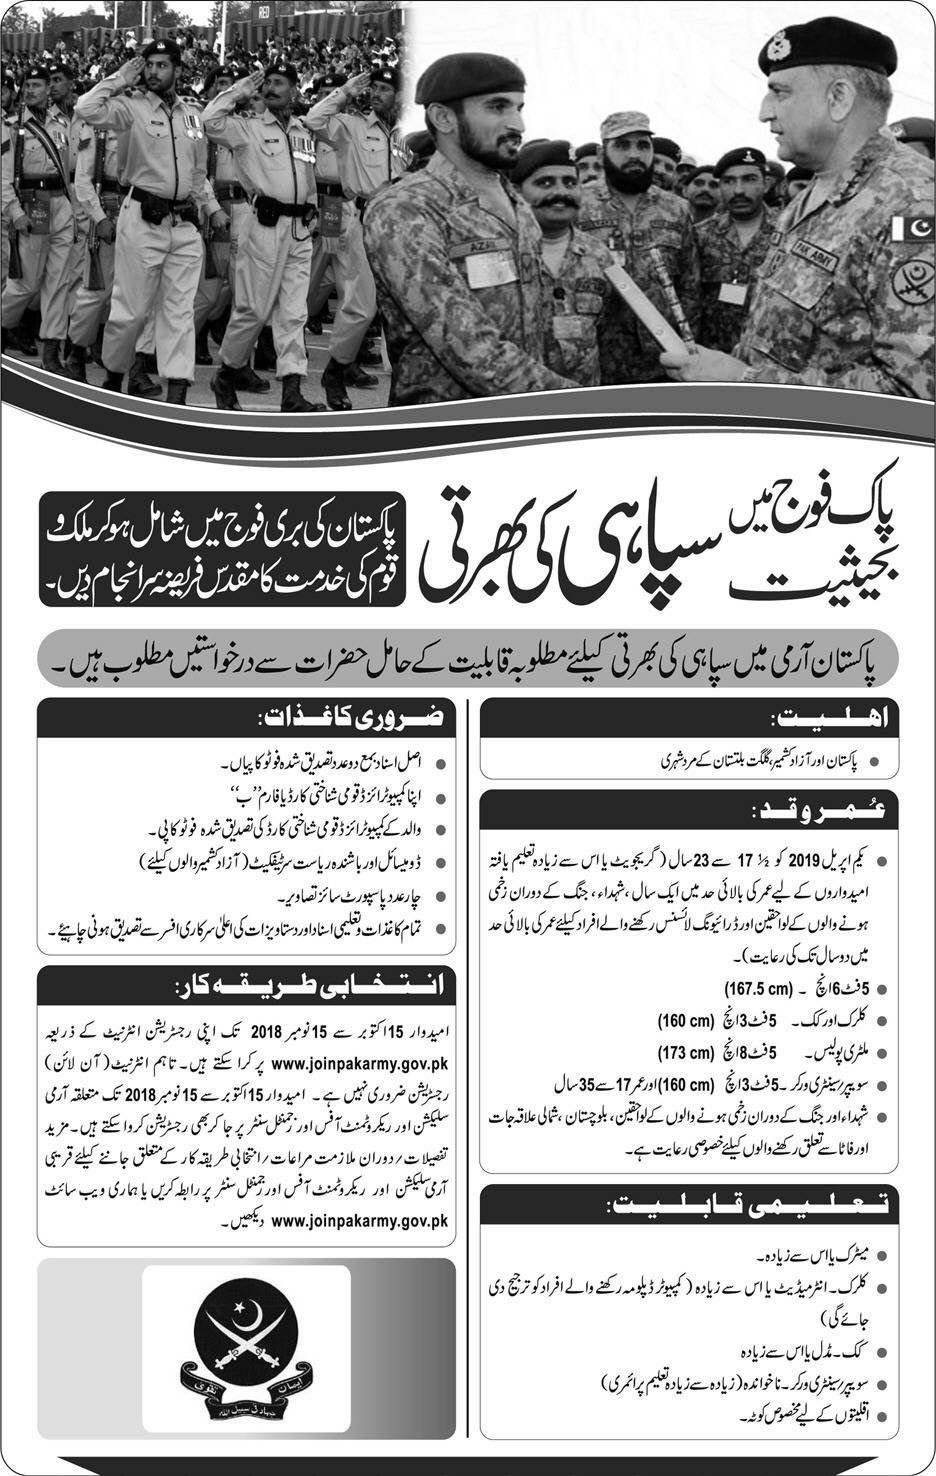 Join Pak Army as Soldier 2019 Registration Last Date